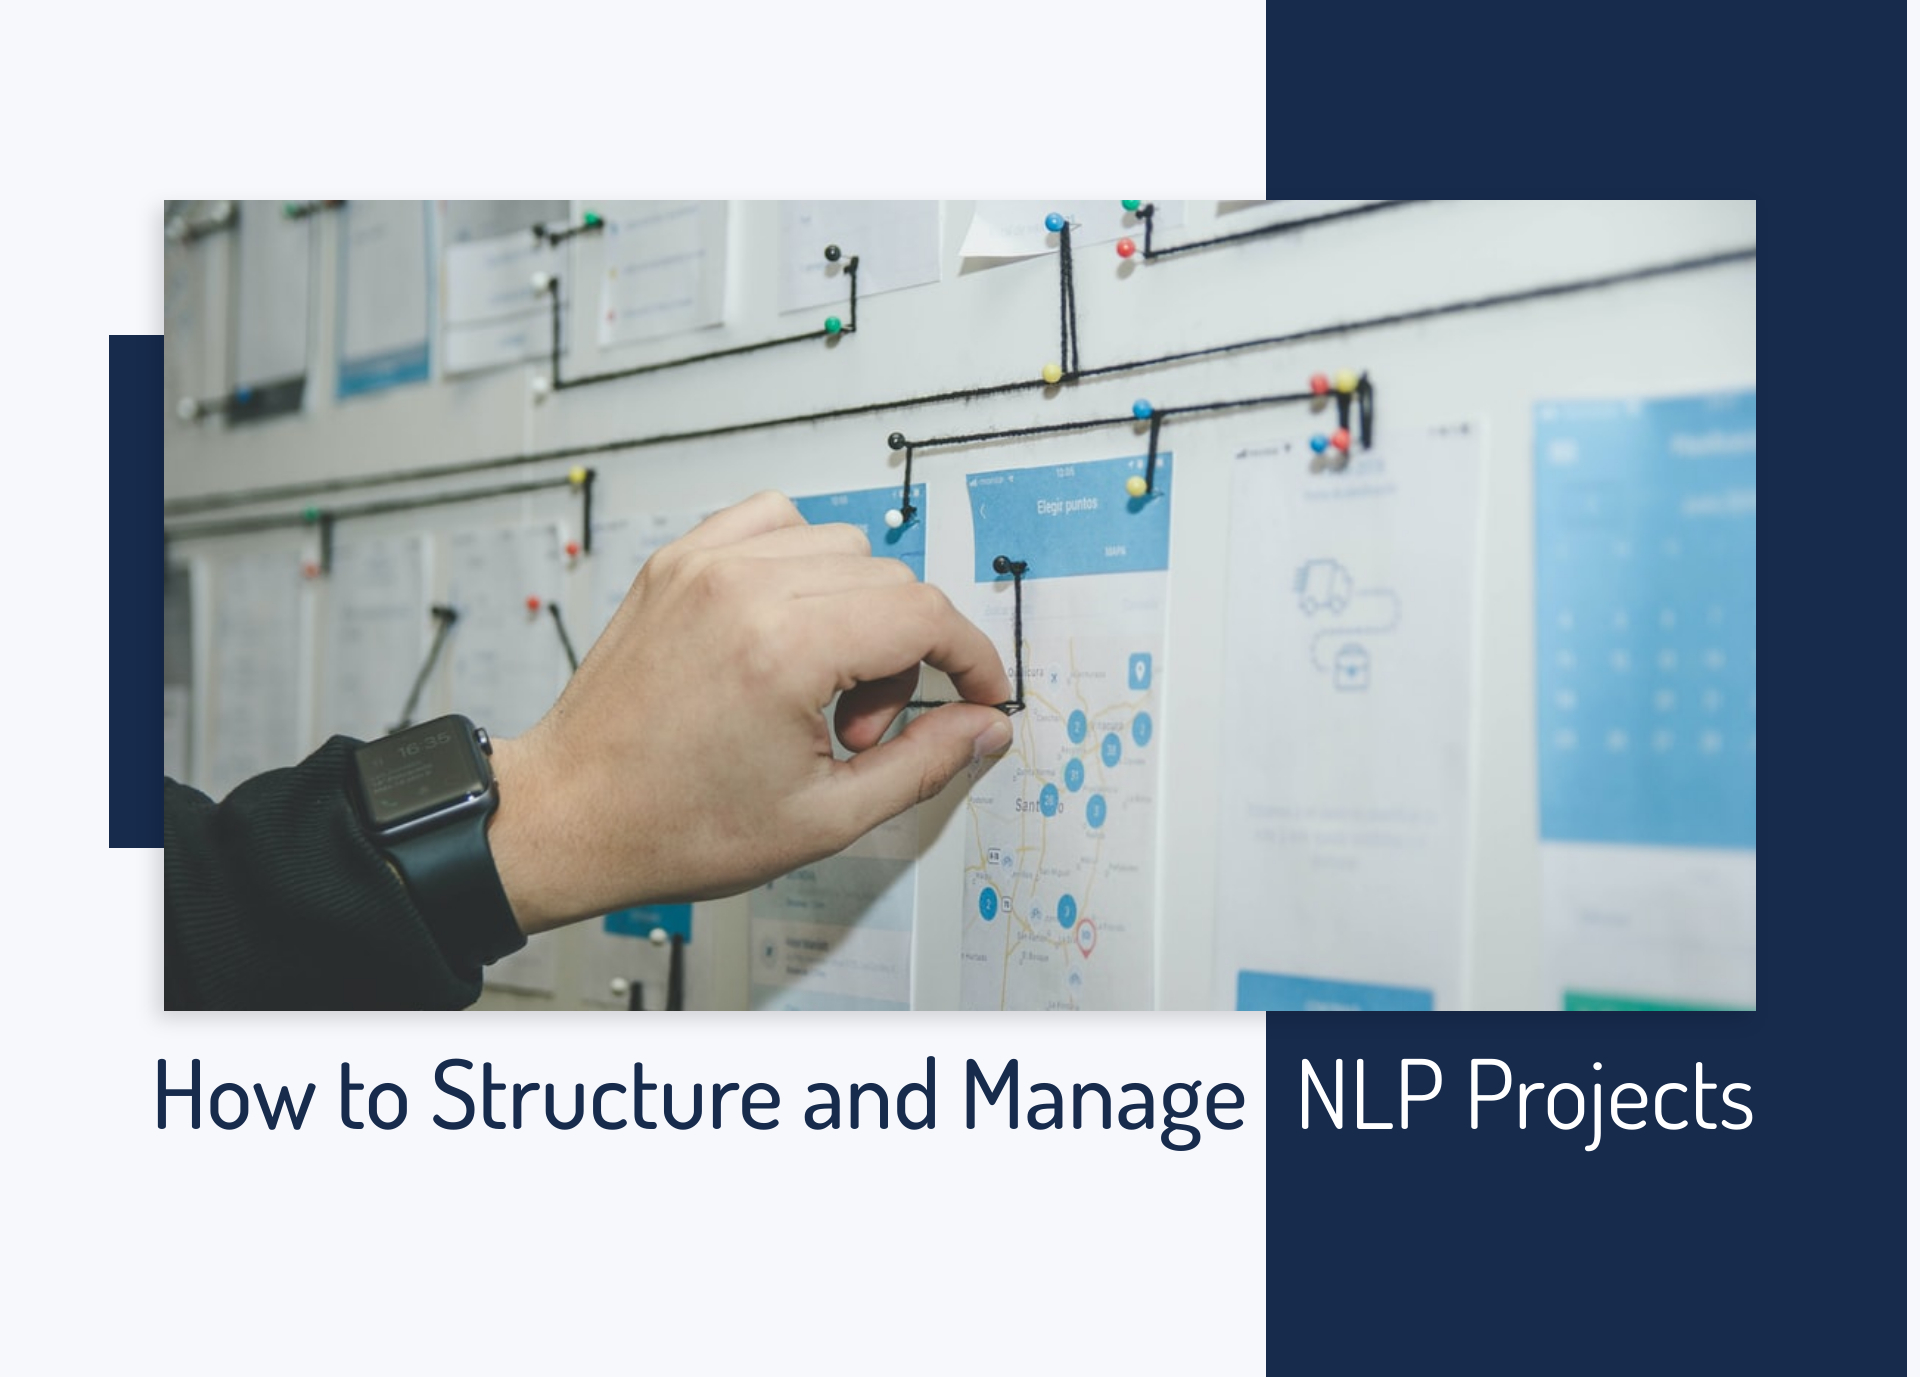 How to Structure and Manage Natural Language Processing (NLP) Projects